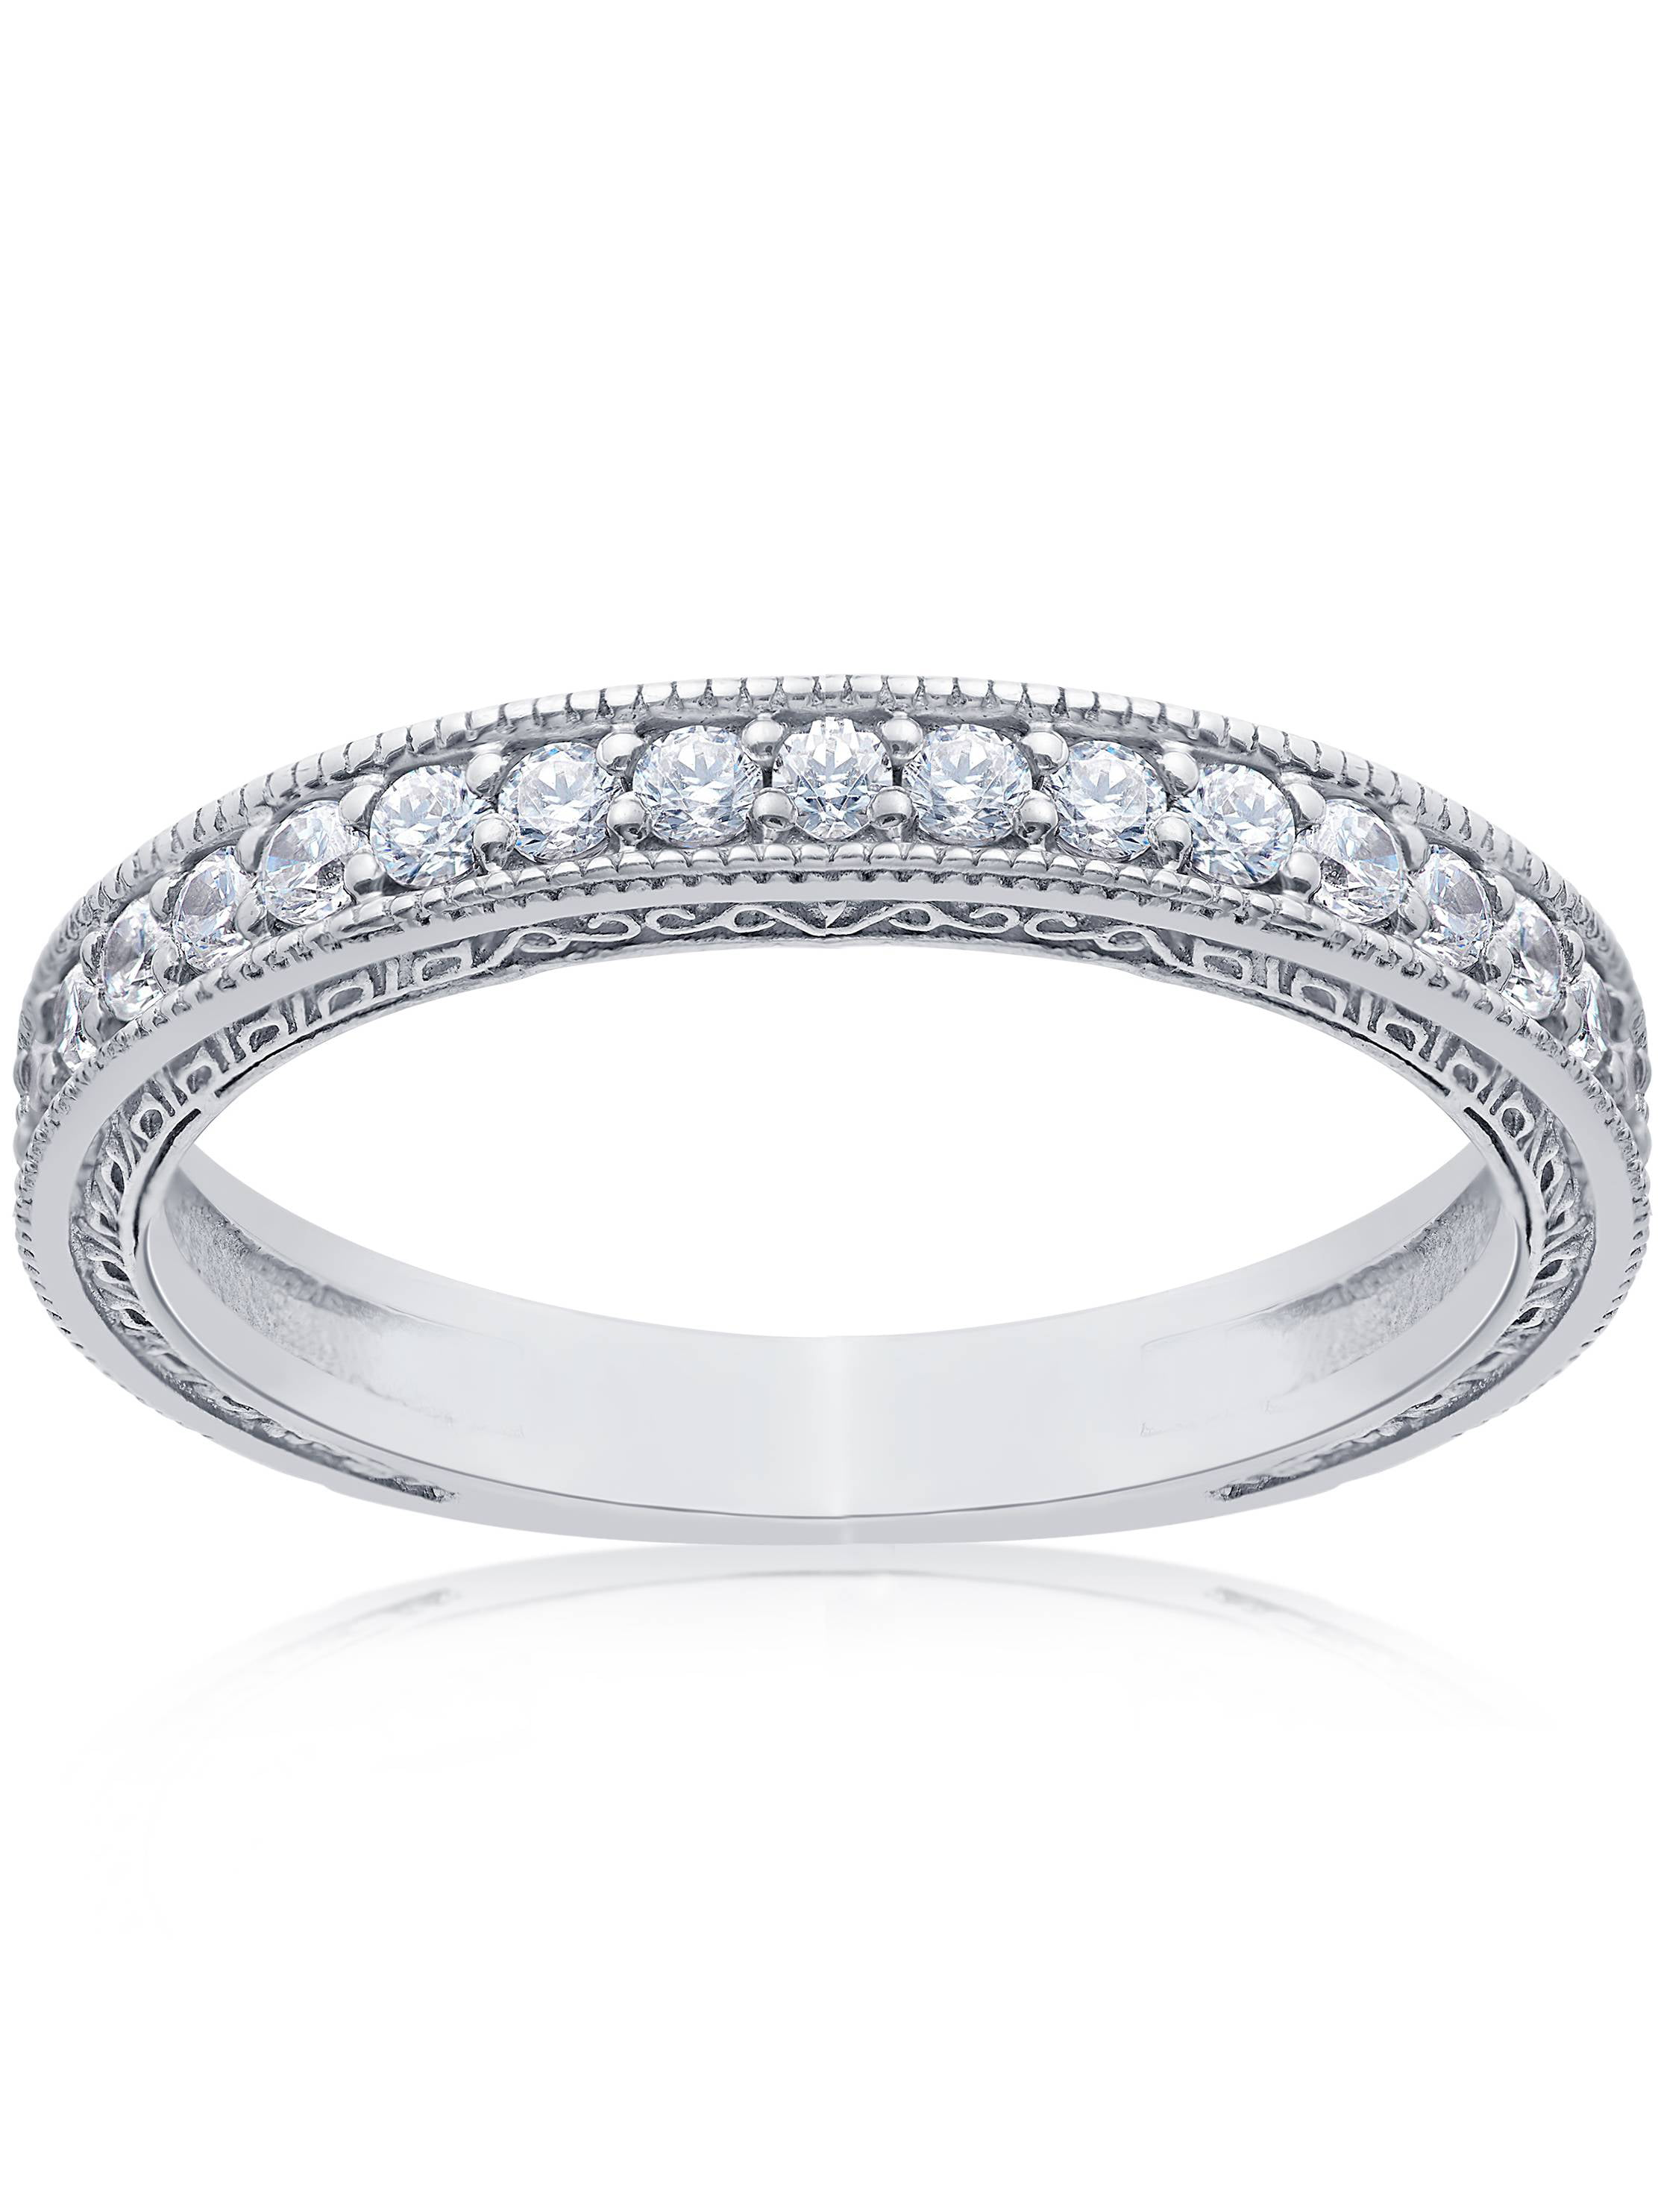 1 2ct Vintage Diamond Wedding Ring 14K White Gold Womens Stackable Band by Pompeii3